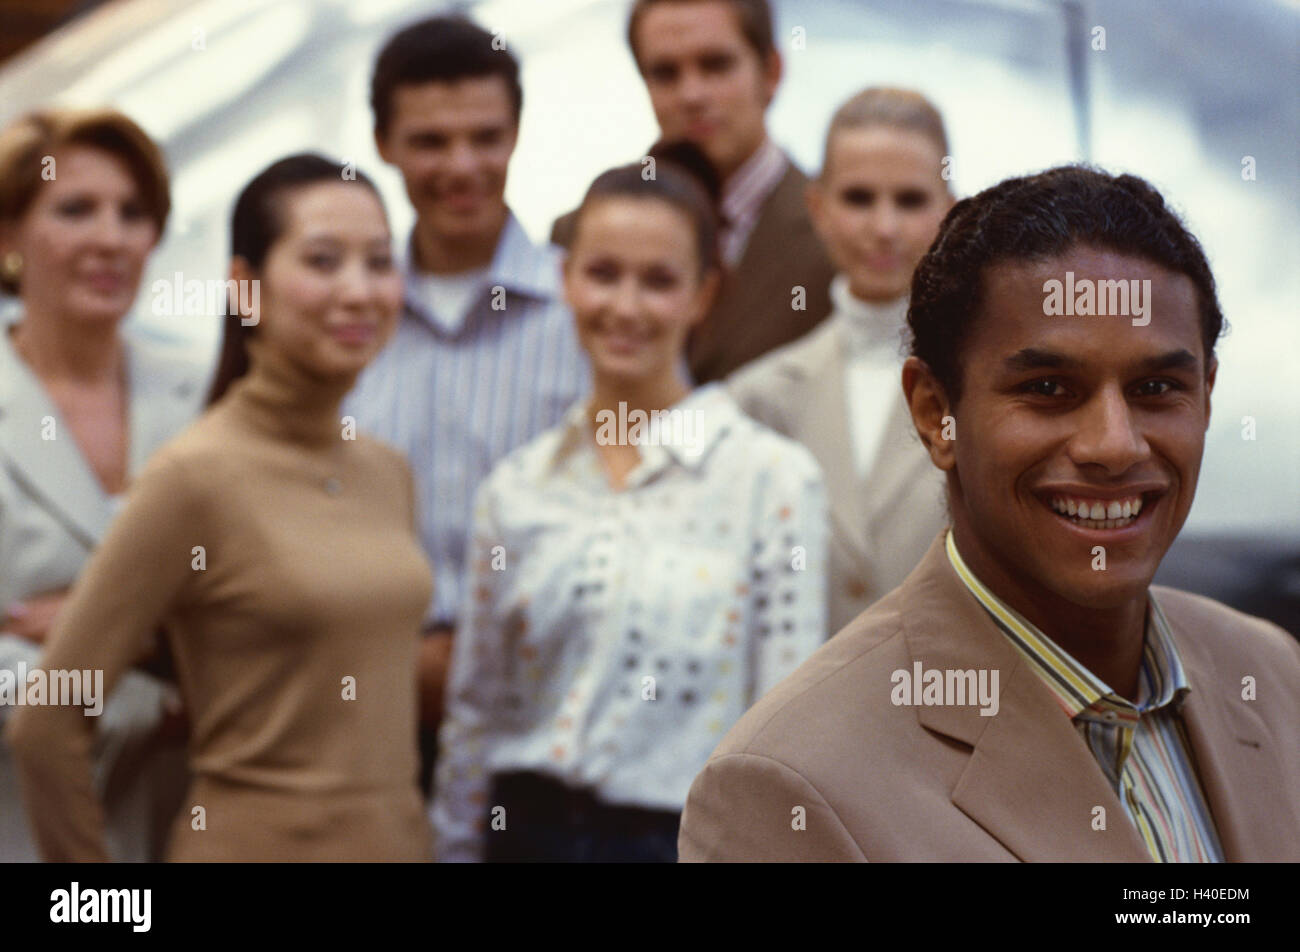 Businessman, in Indian, background group, employee, business, office, manager, entrepreneur, team leader, manager, - Stock Image